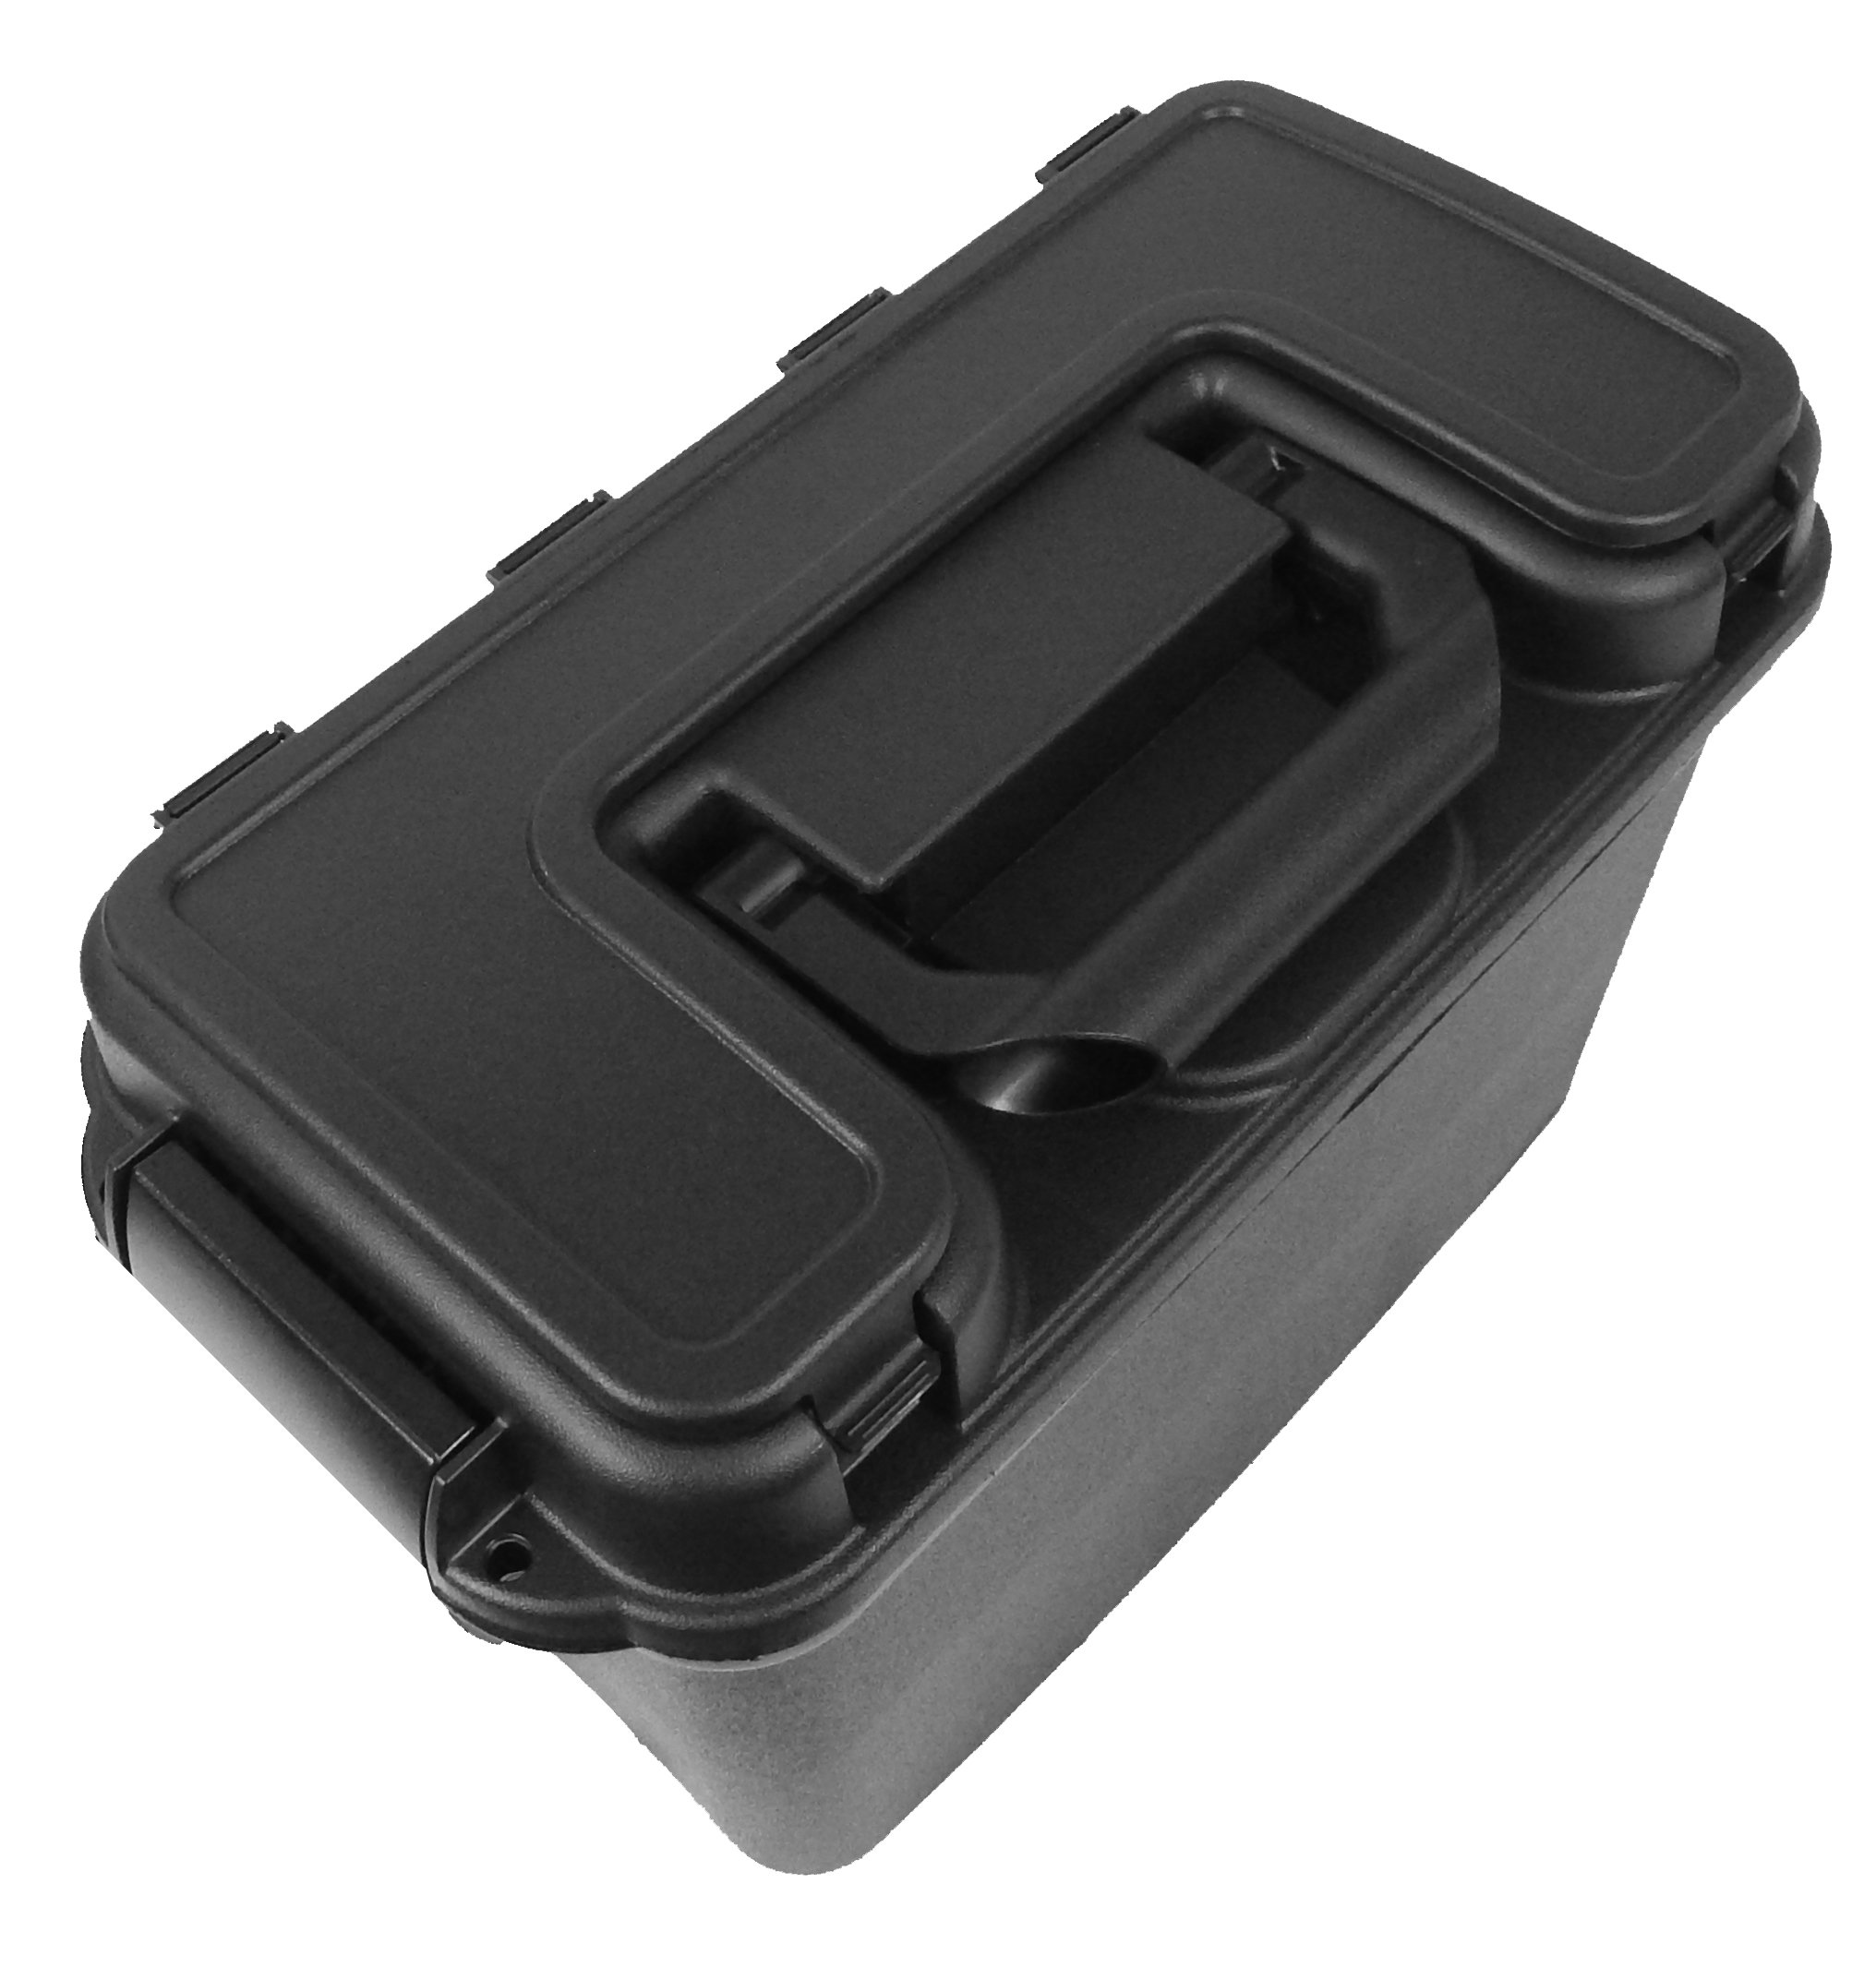 CASEMATIX Thermal IR Imager Camera Case Box Fits Thermal Camera, Charger, Testing Accessories and More - Works for FLIR TG165 Spot, TG167, E-SERIES E40, E50, E60 Thermal Cameras and More